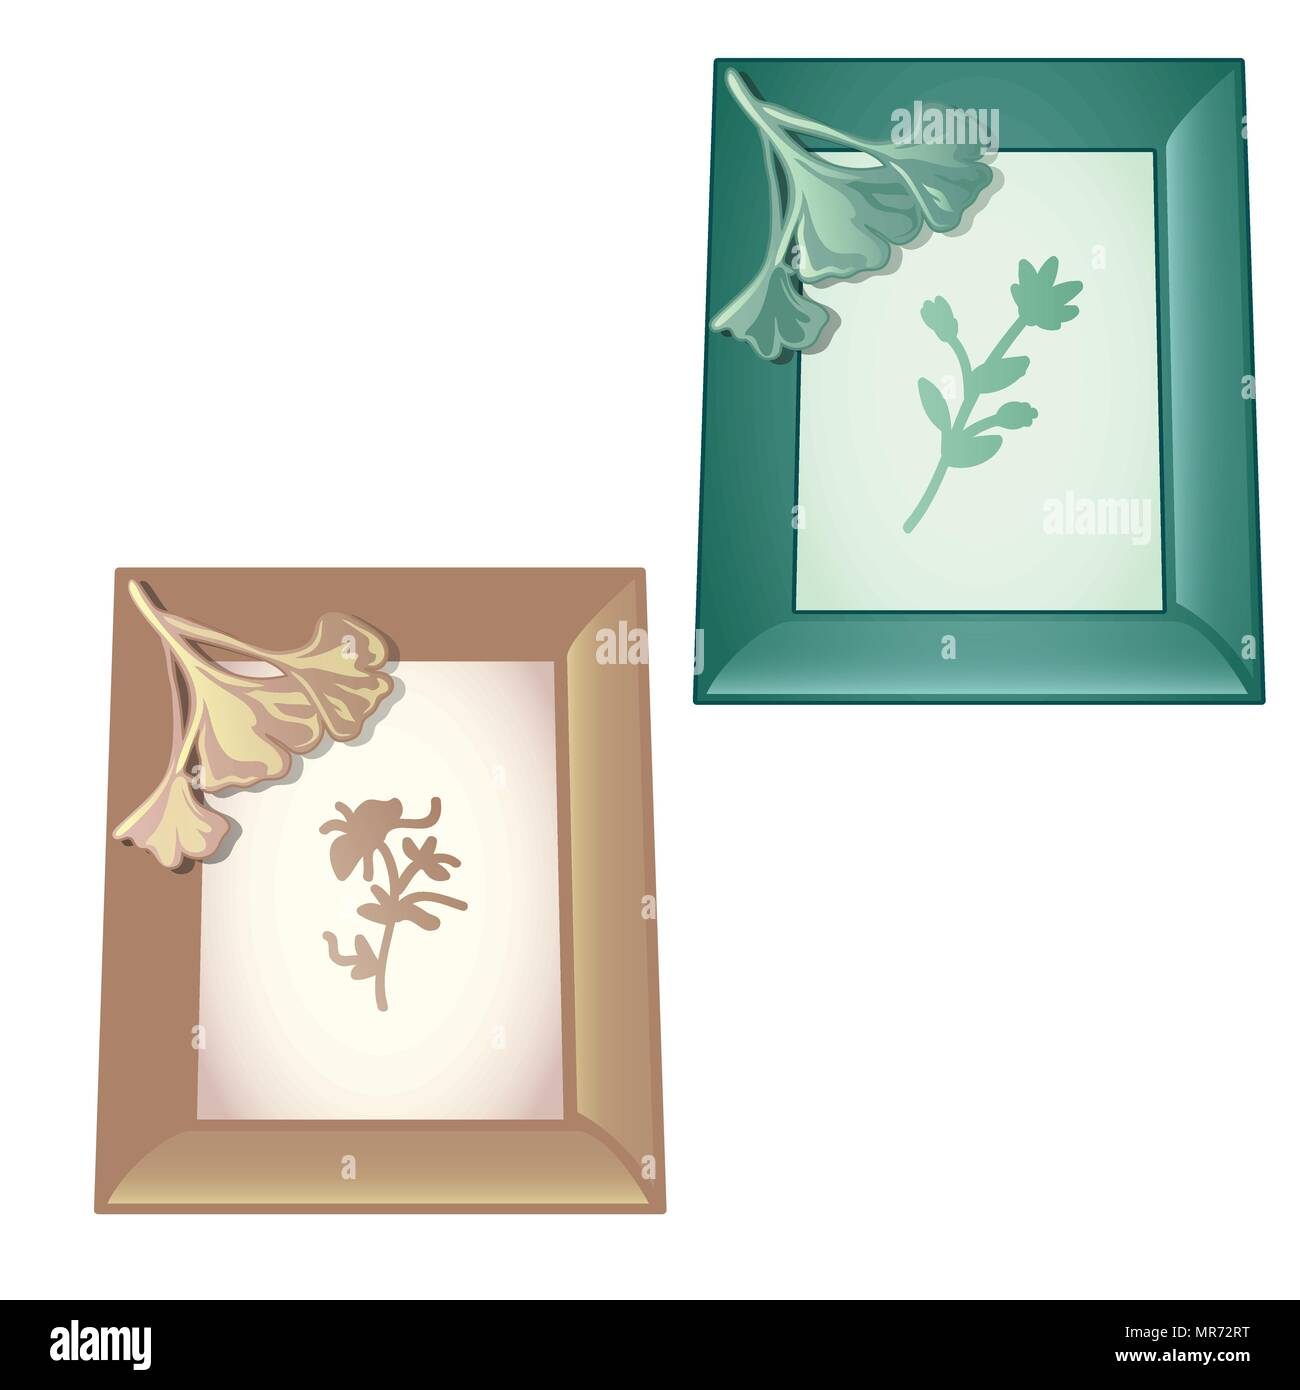 Two wall-mounted wooden frame with designs on the theme of vegetable isolated on white background. Vector cartoon close-up illustration. - Stock Image